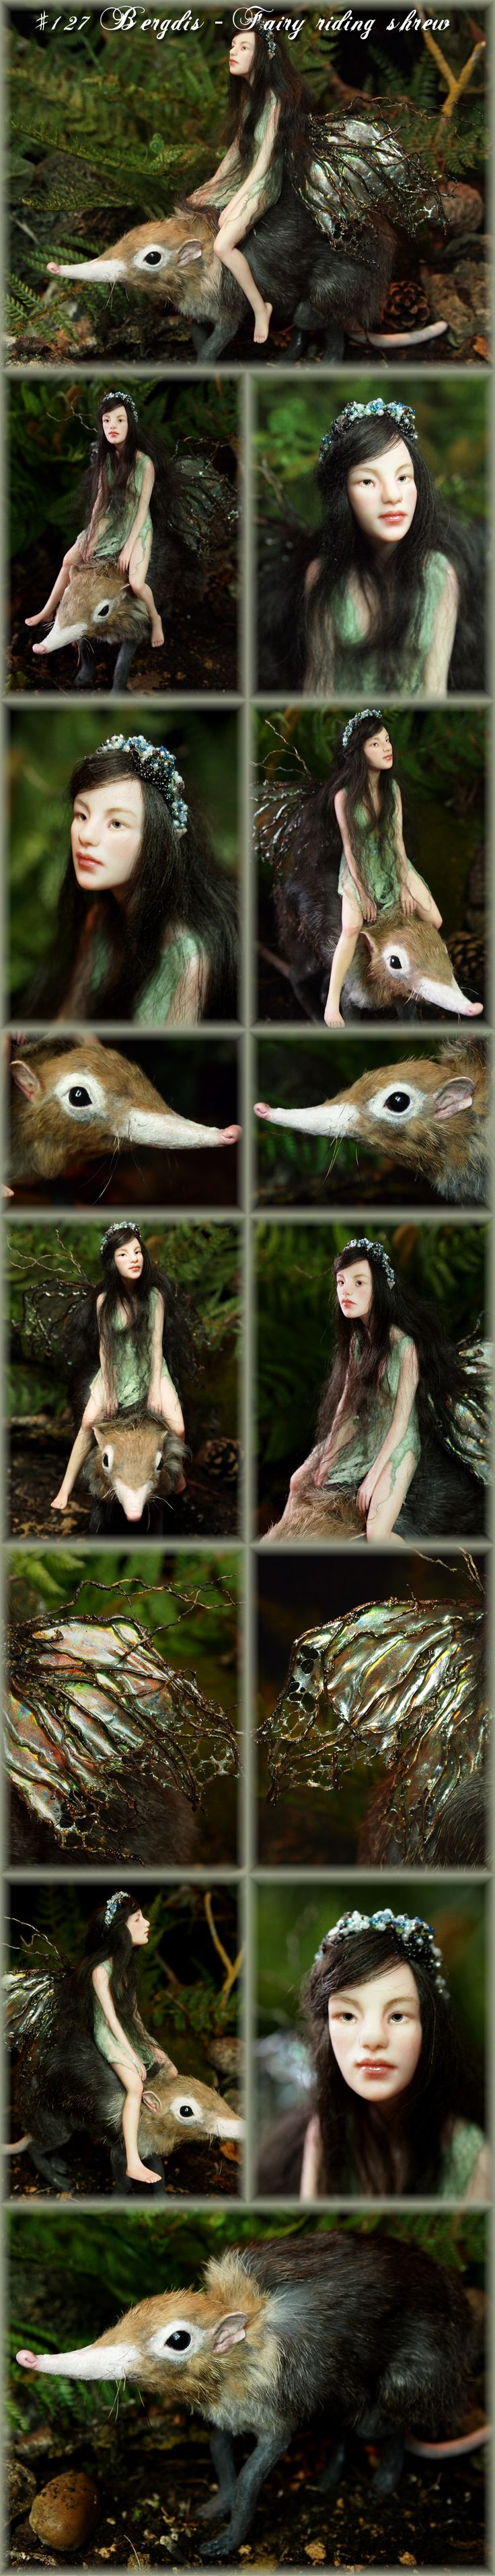 Nenúfar Blanco ~ #127 Bergdis - Fairy riding shrew